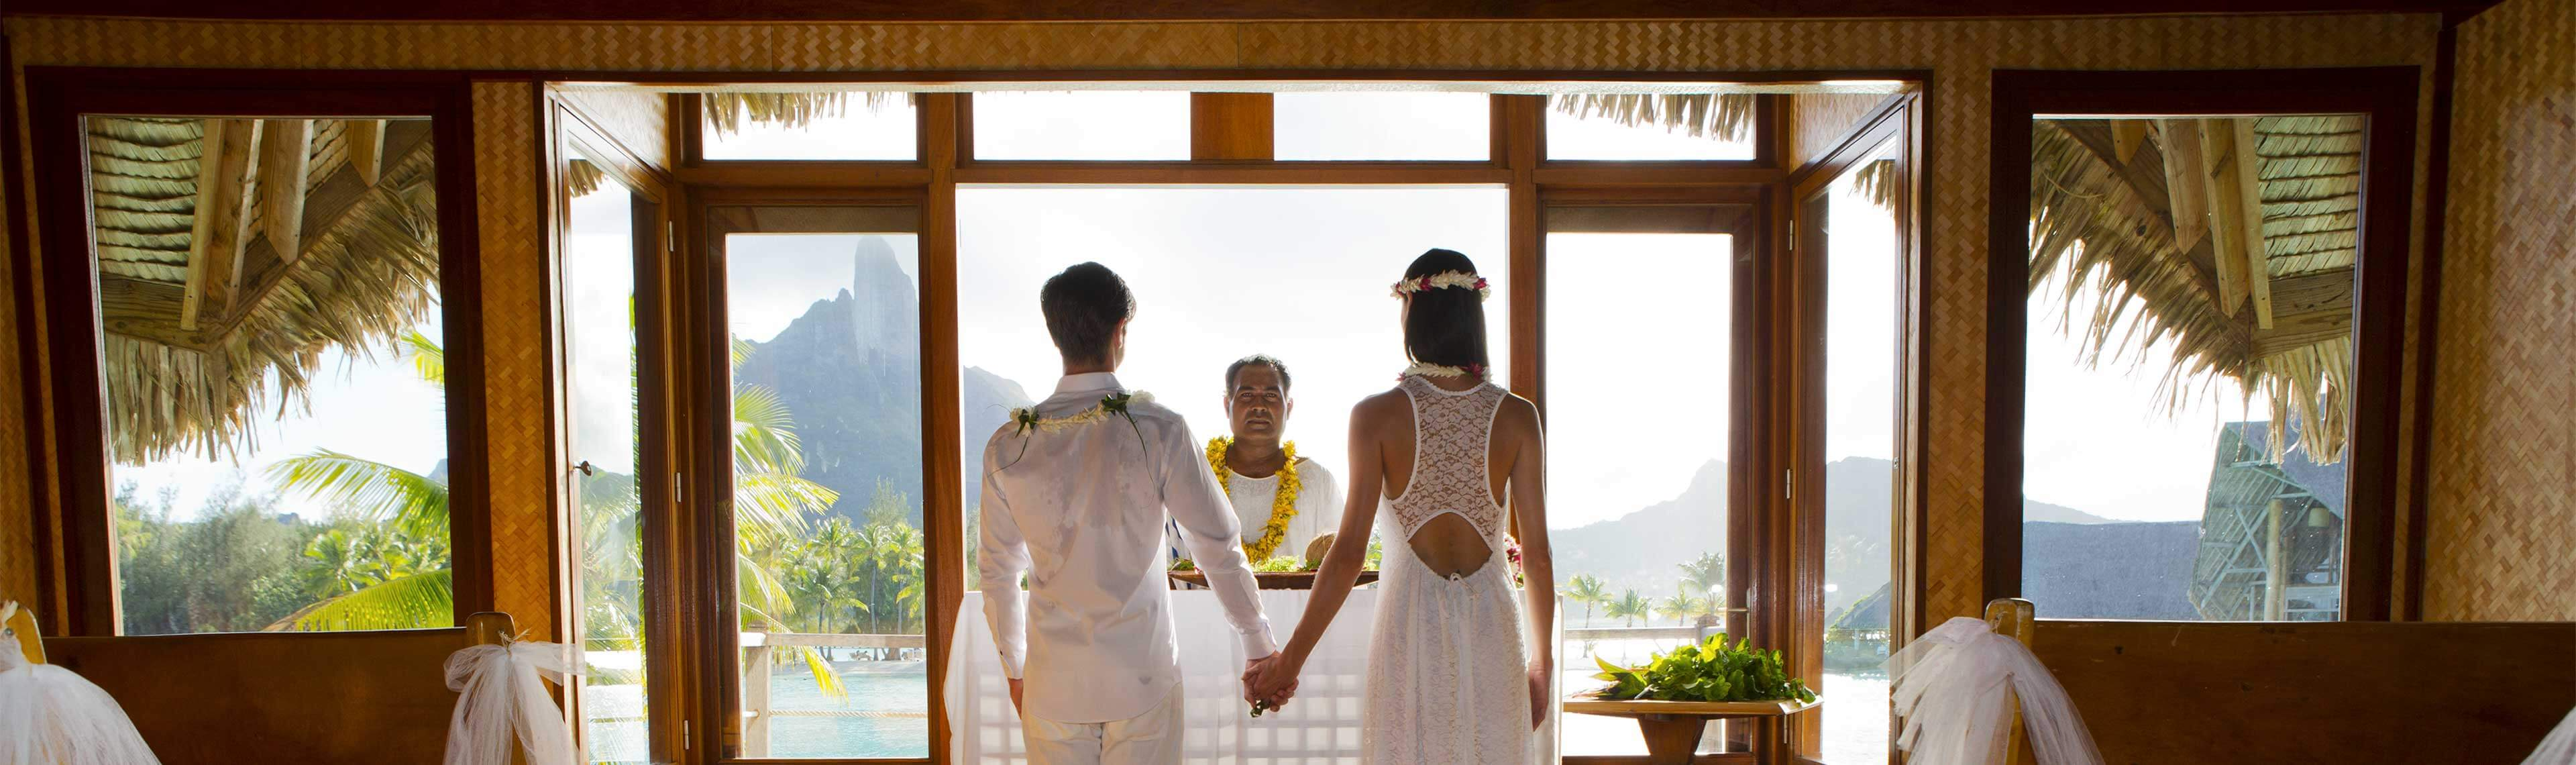 getting married tahiti